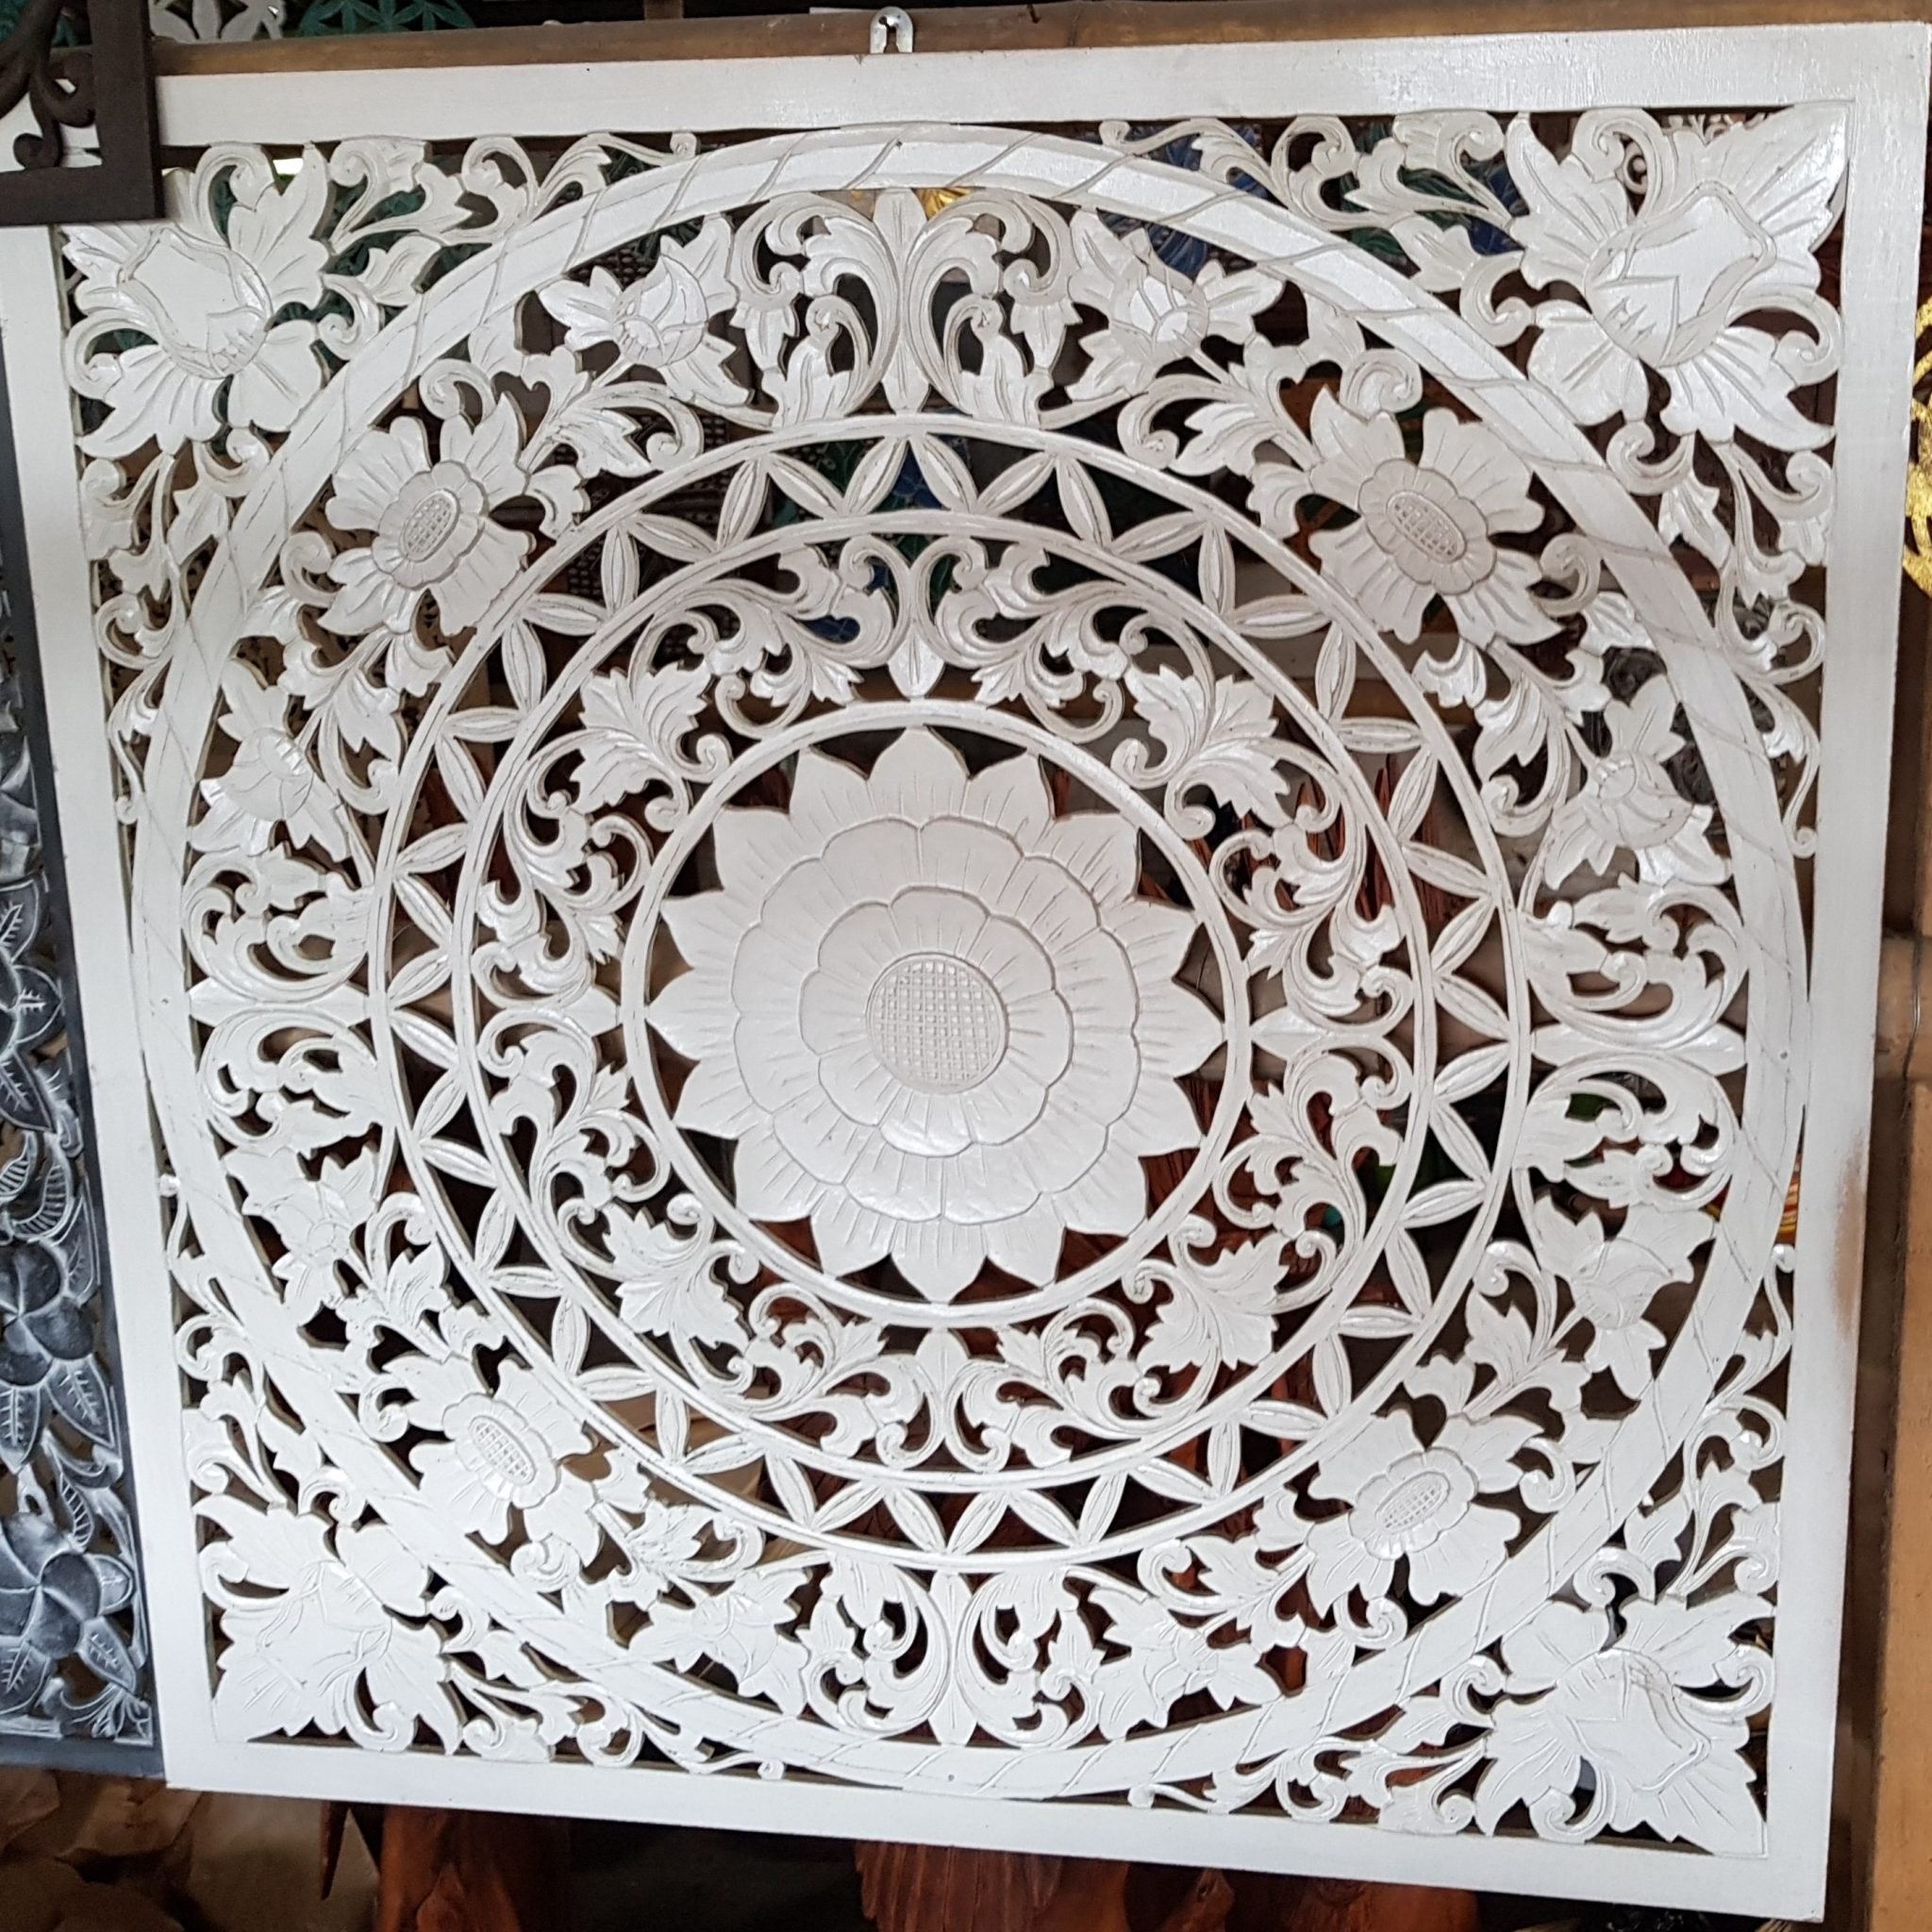 Wall Art Bali Decor Balinese Online Australia Wide Delivery From